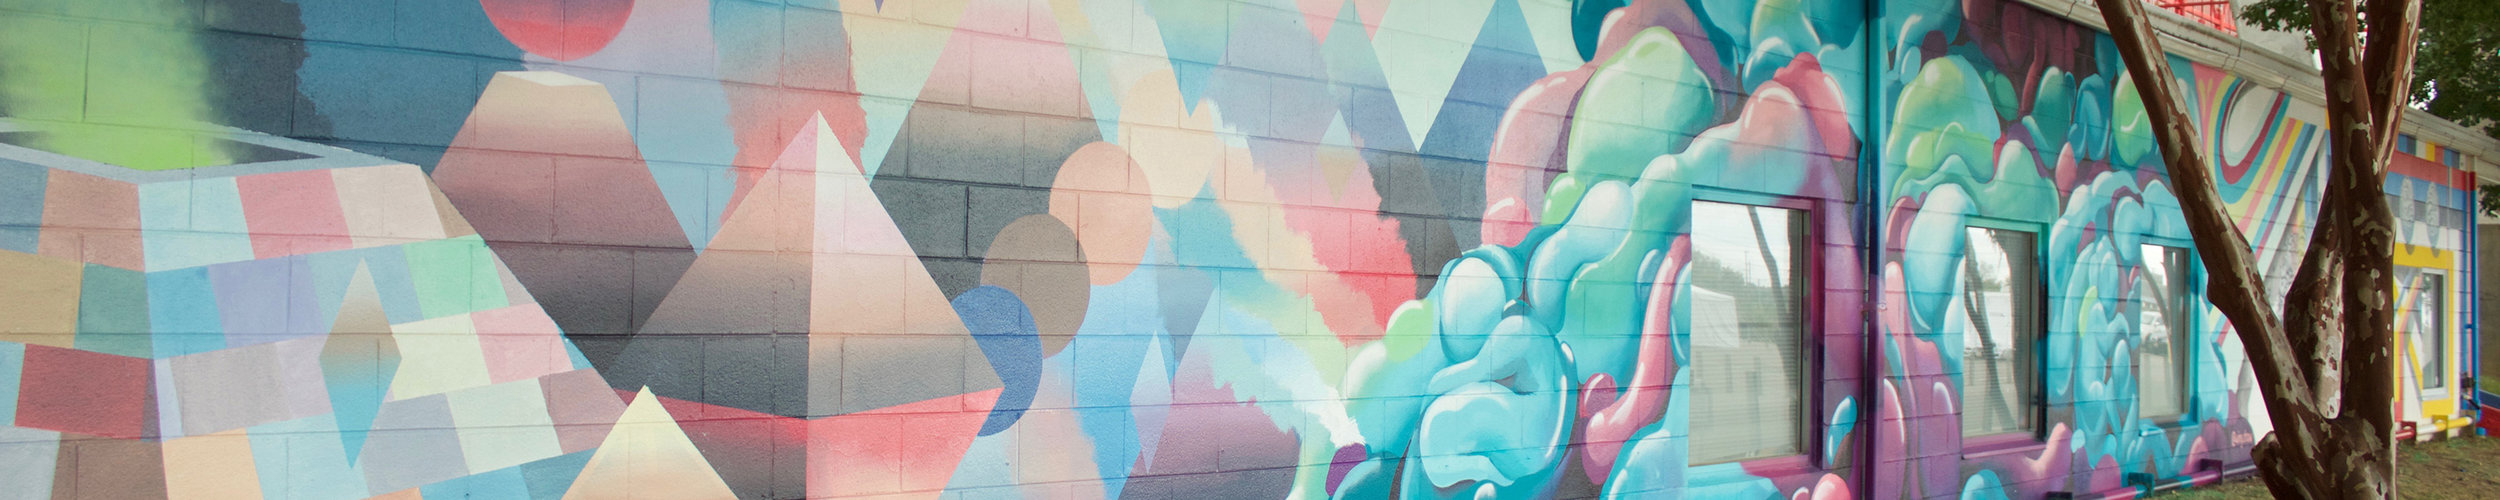 Mural Banner in About Us on Website.jpg